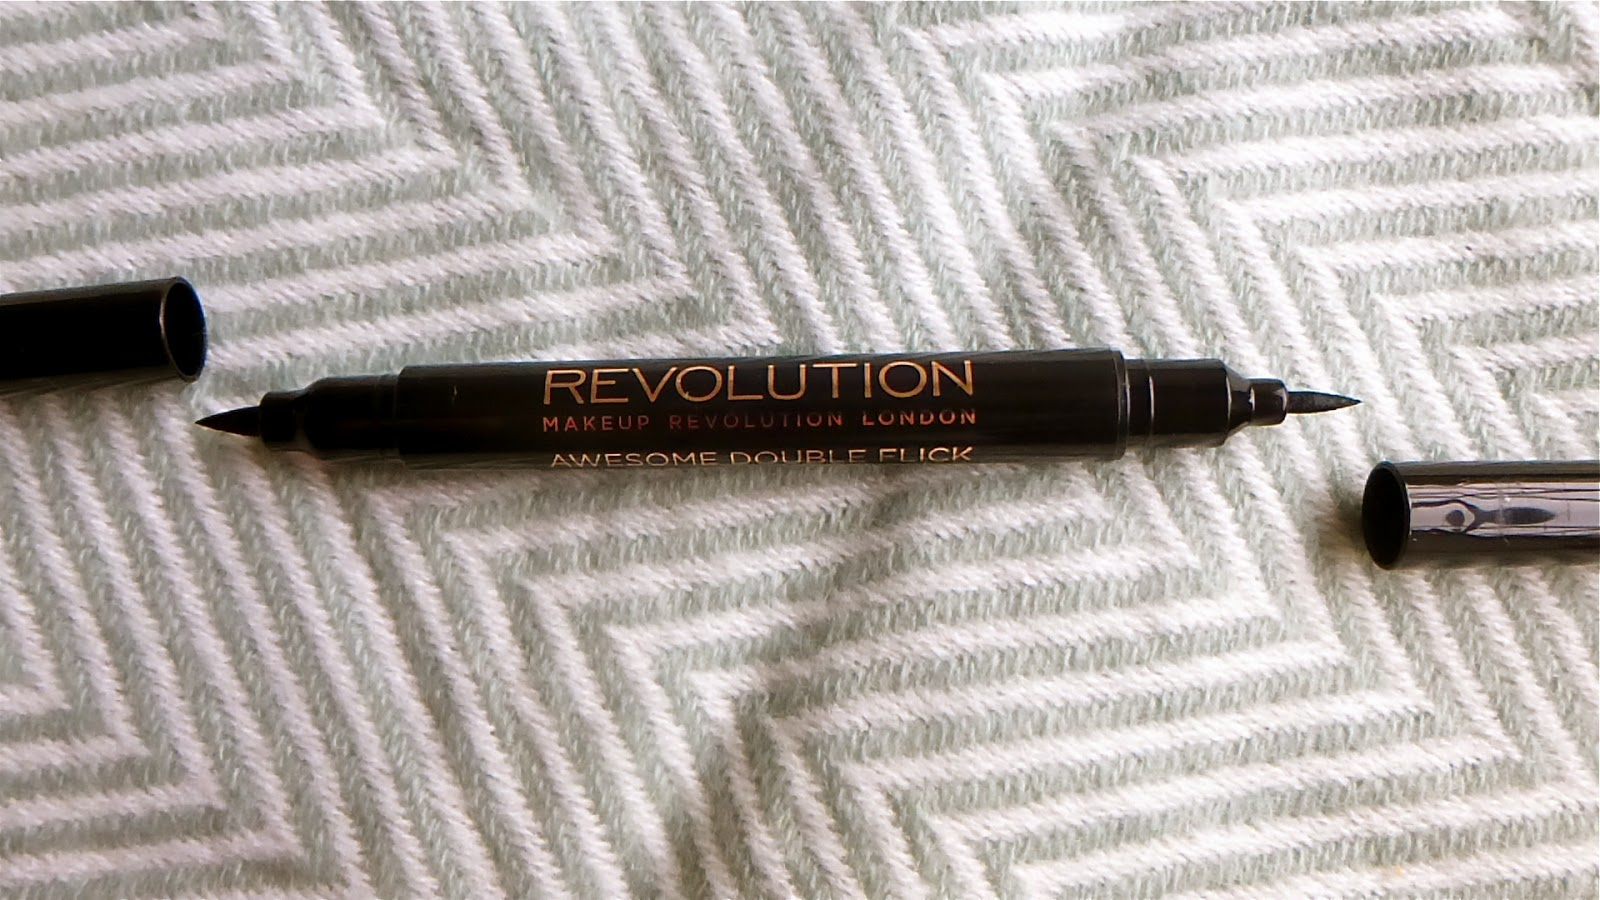 Makeup Revolution Awesome Double Flick Eyeliner